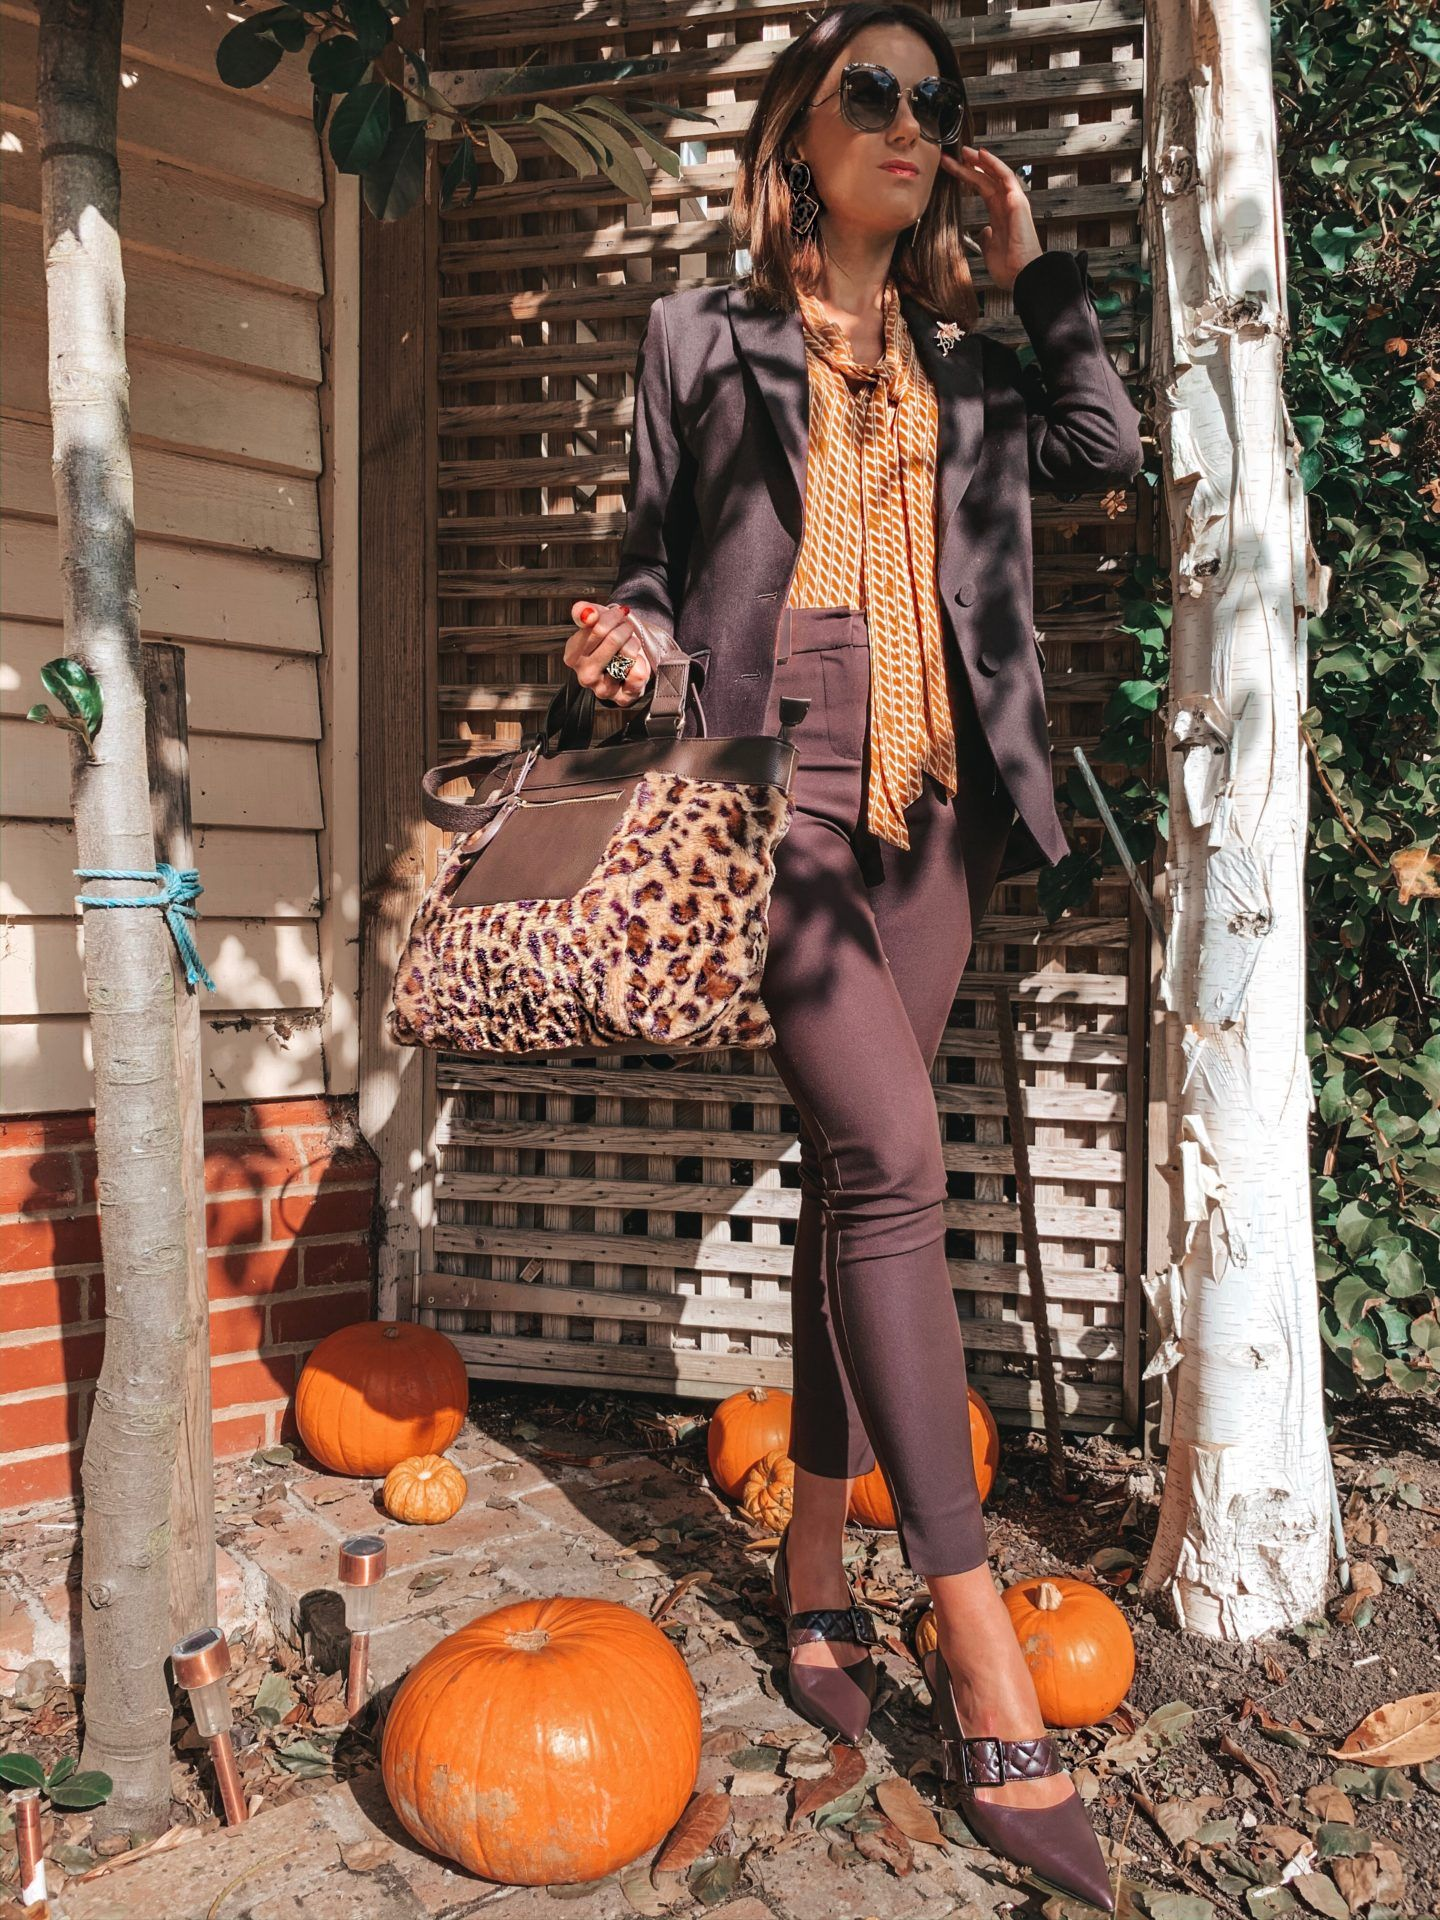 A/W19 Fashion trends Beige and brown hues